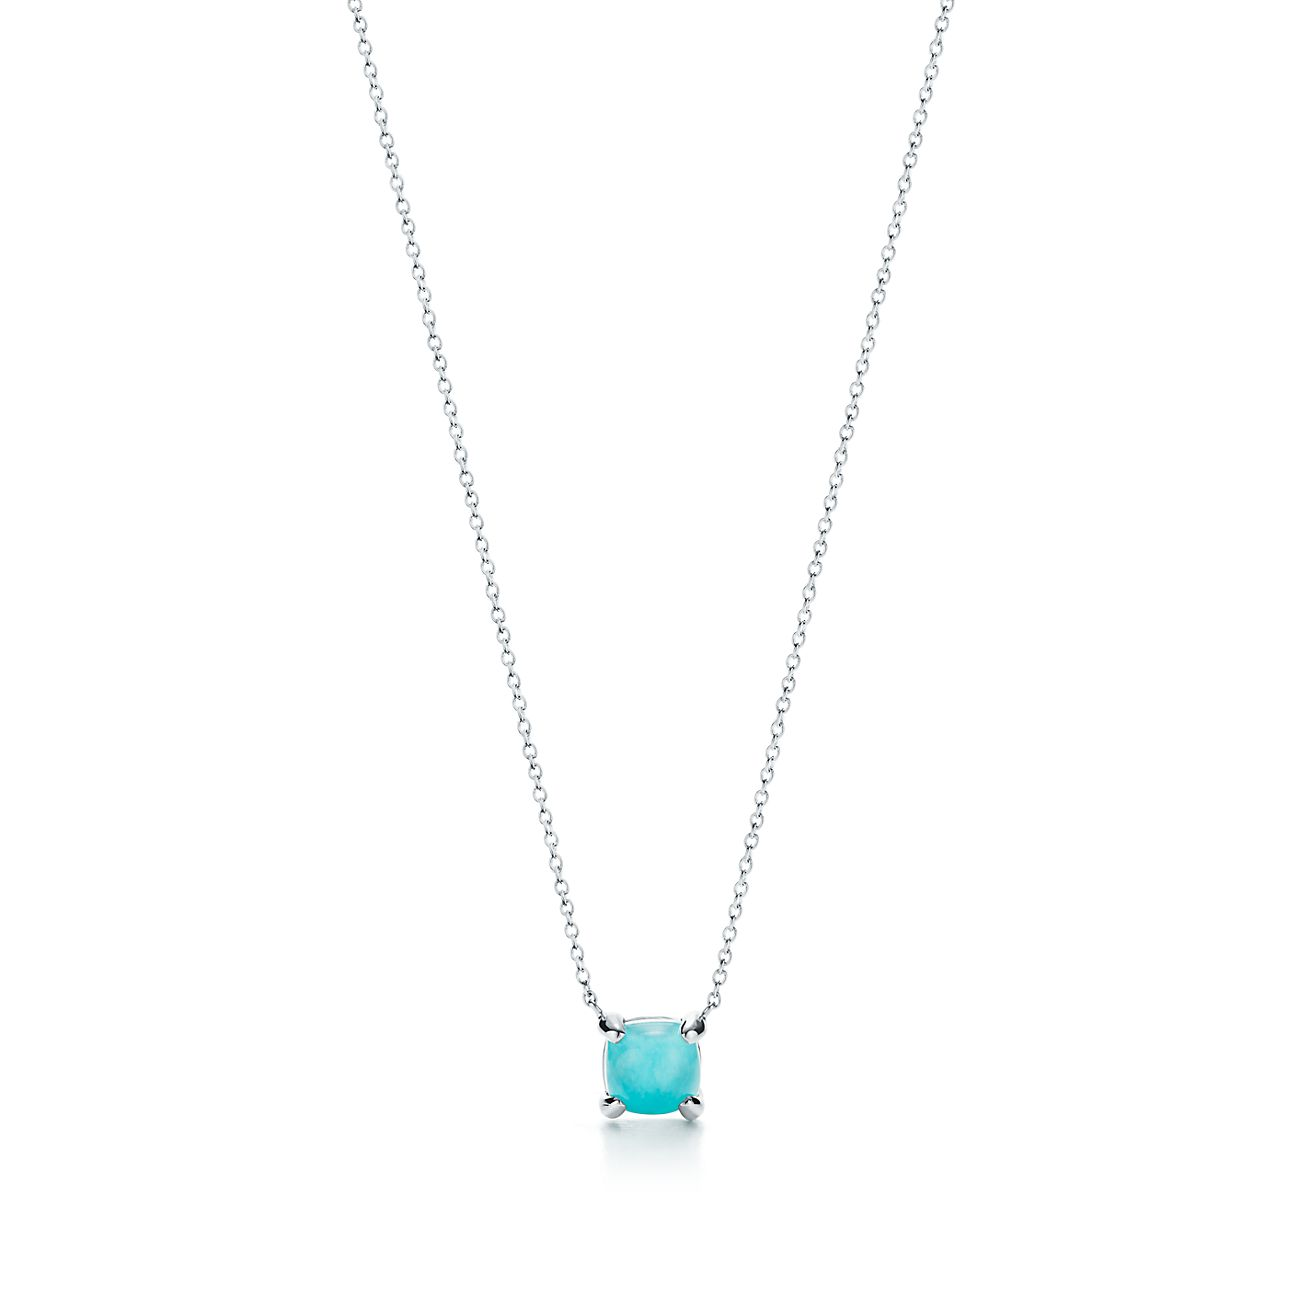 Palomas Sugar Stacks amazonite pendant with sterling silver Tiffany & Co. jyfPW